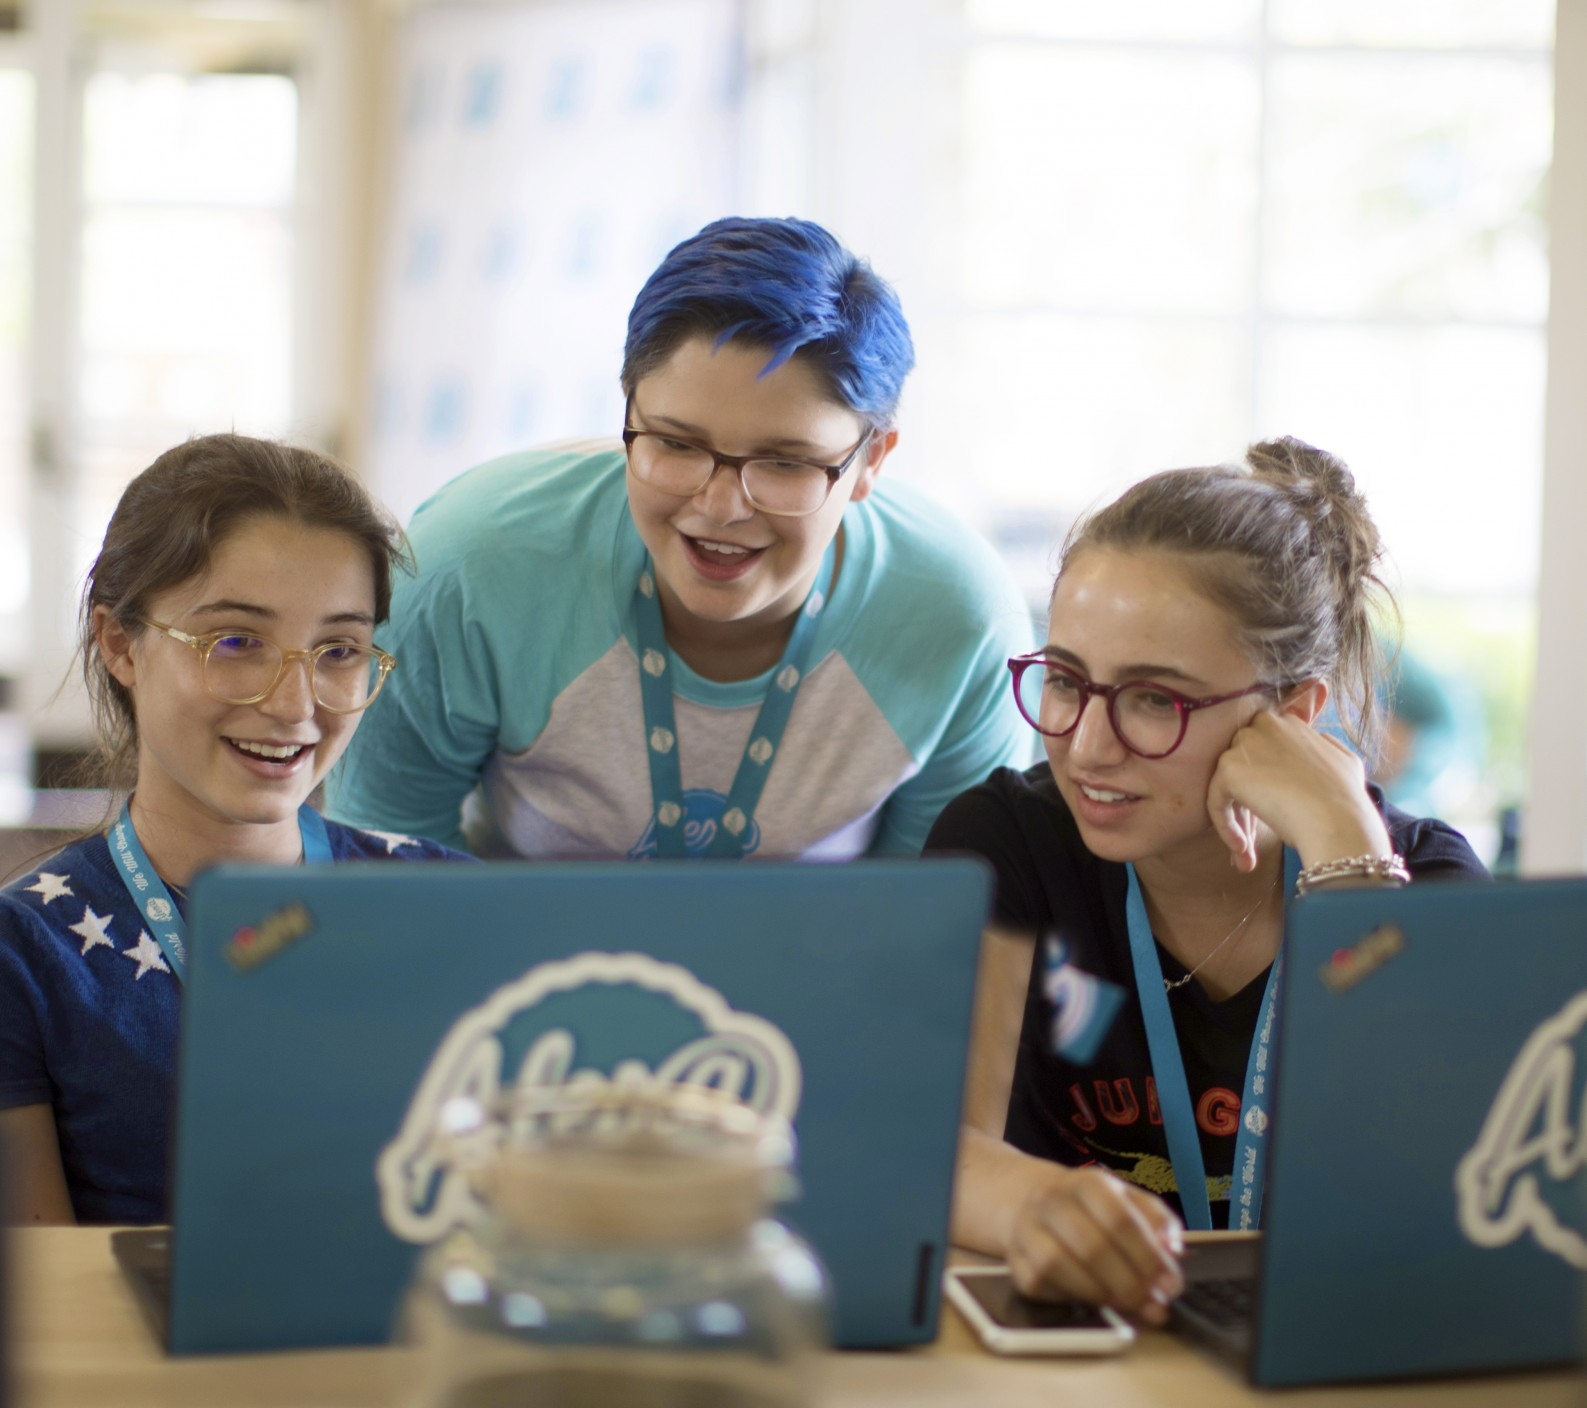 Summer Program - Technology | Alexa Cafe: All-Girls STEM Camp | Held at UW Seattle